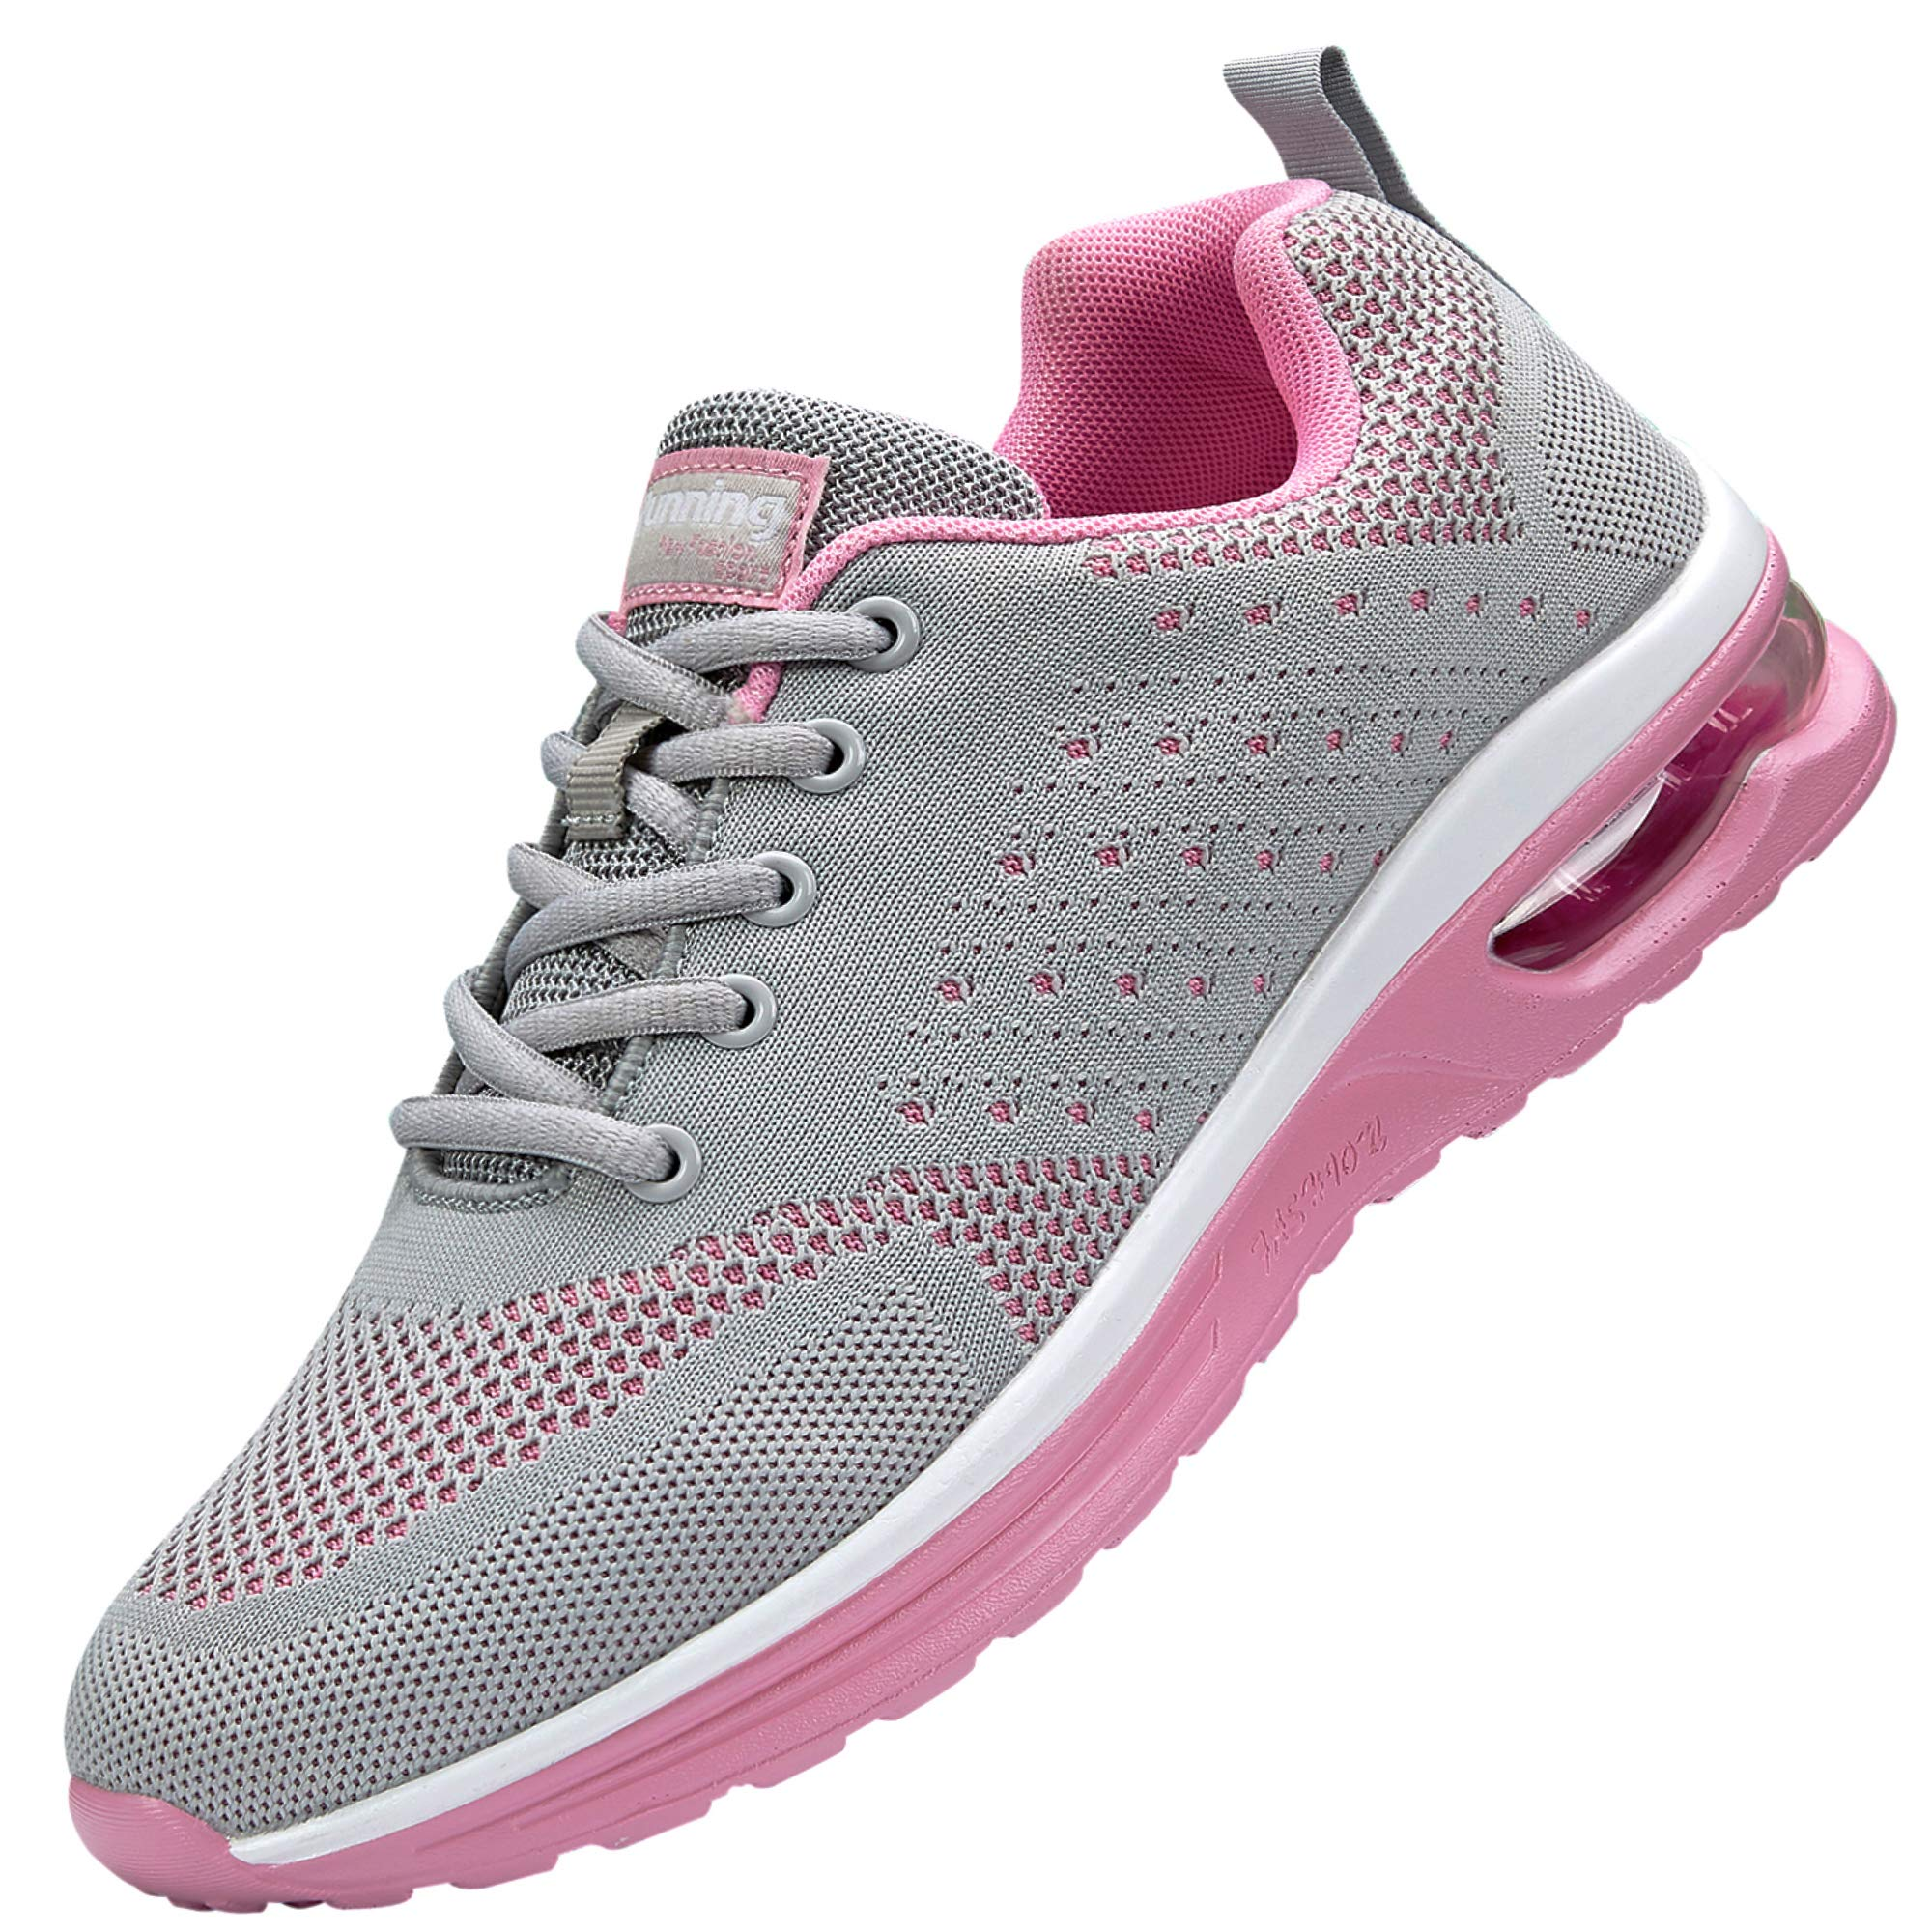 Nishiguang Women's Air Athletic Running Sneaker Fitness Sport Gym Jogging Tennis Shoes